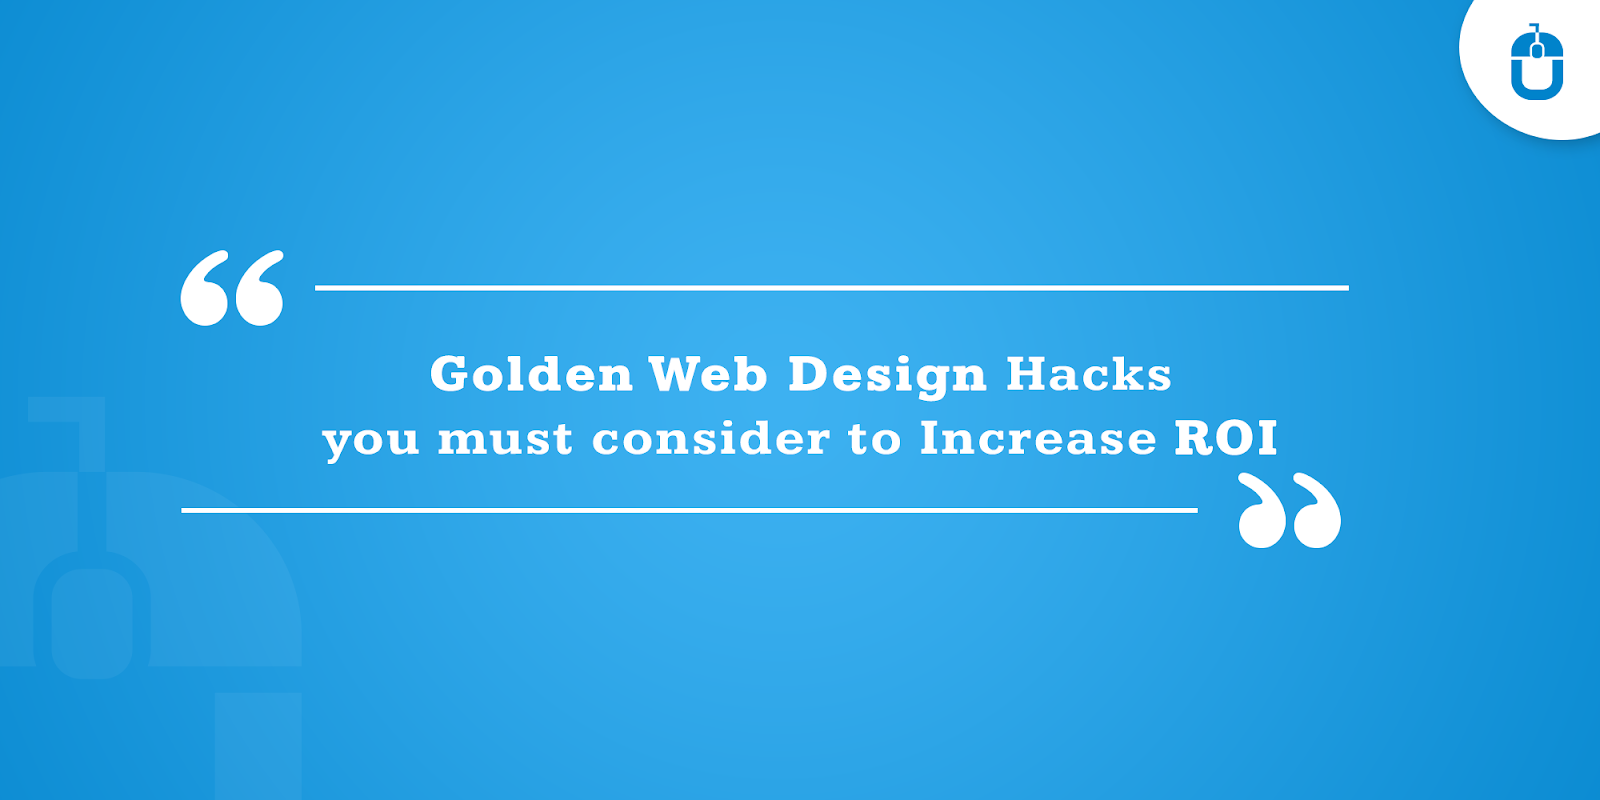 Golden Web Design Hacks You Must Consider To Increase ROI